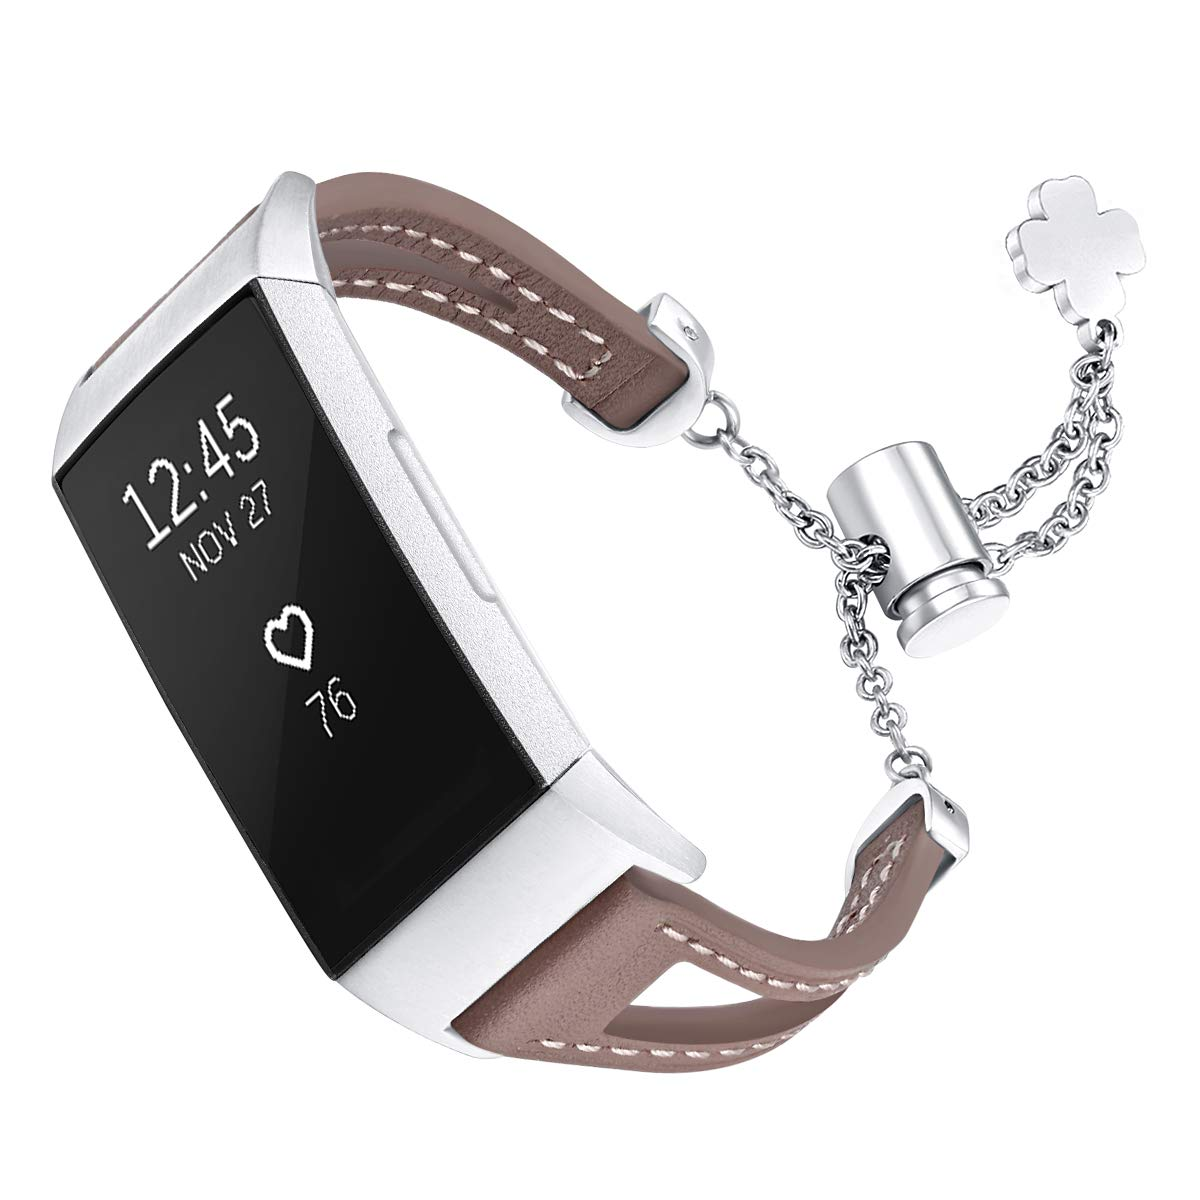 fastgo Leather Bracelet Compatible with Fitbit Charge 3/Charge3 SE Bands, Premium Stainless Steel Replacement Wristbands Classy Women Girls Adjustable (Tan) by fastgo